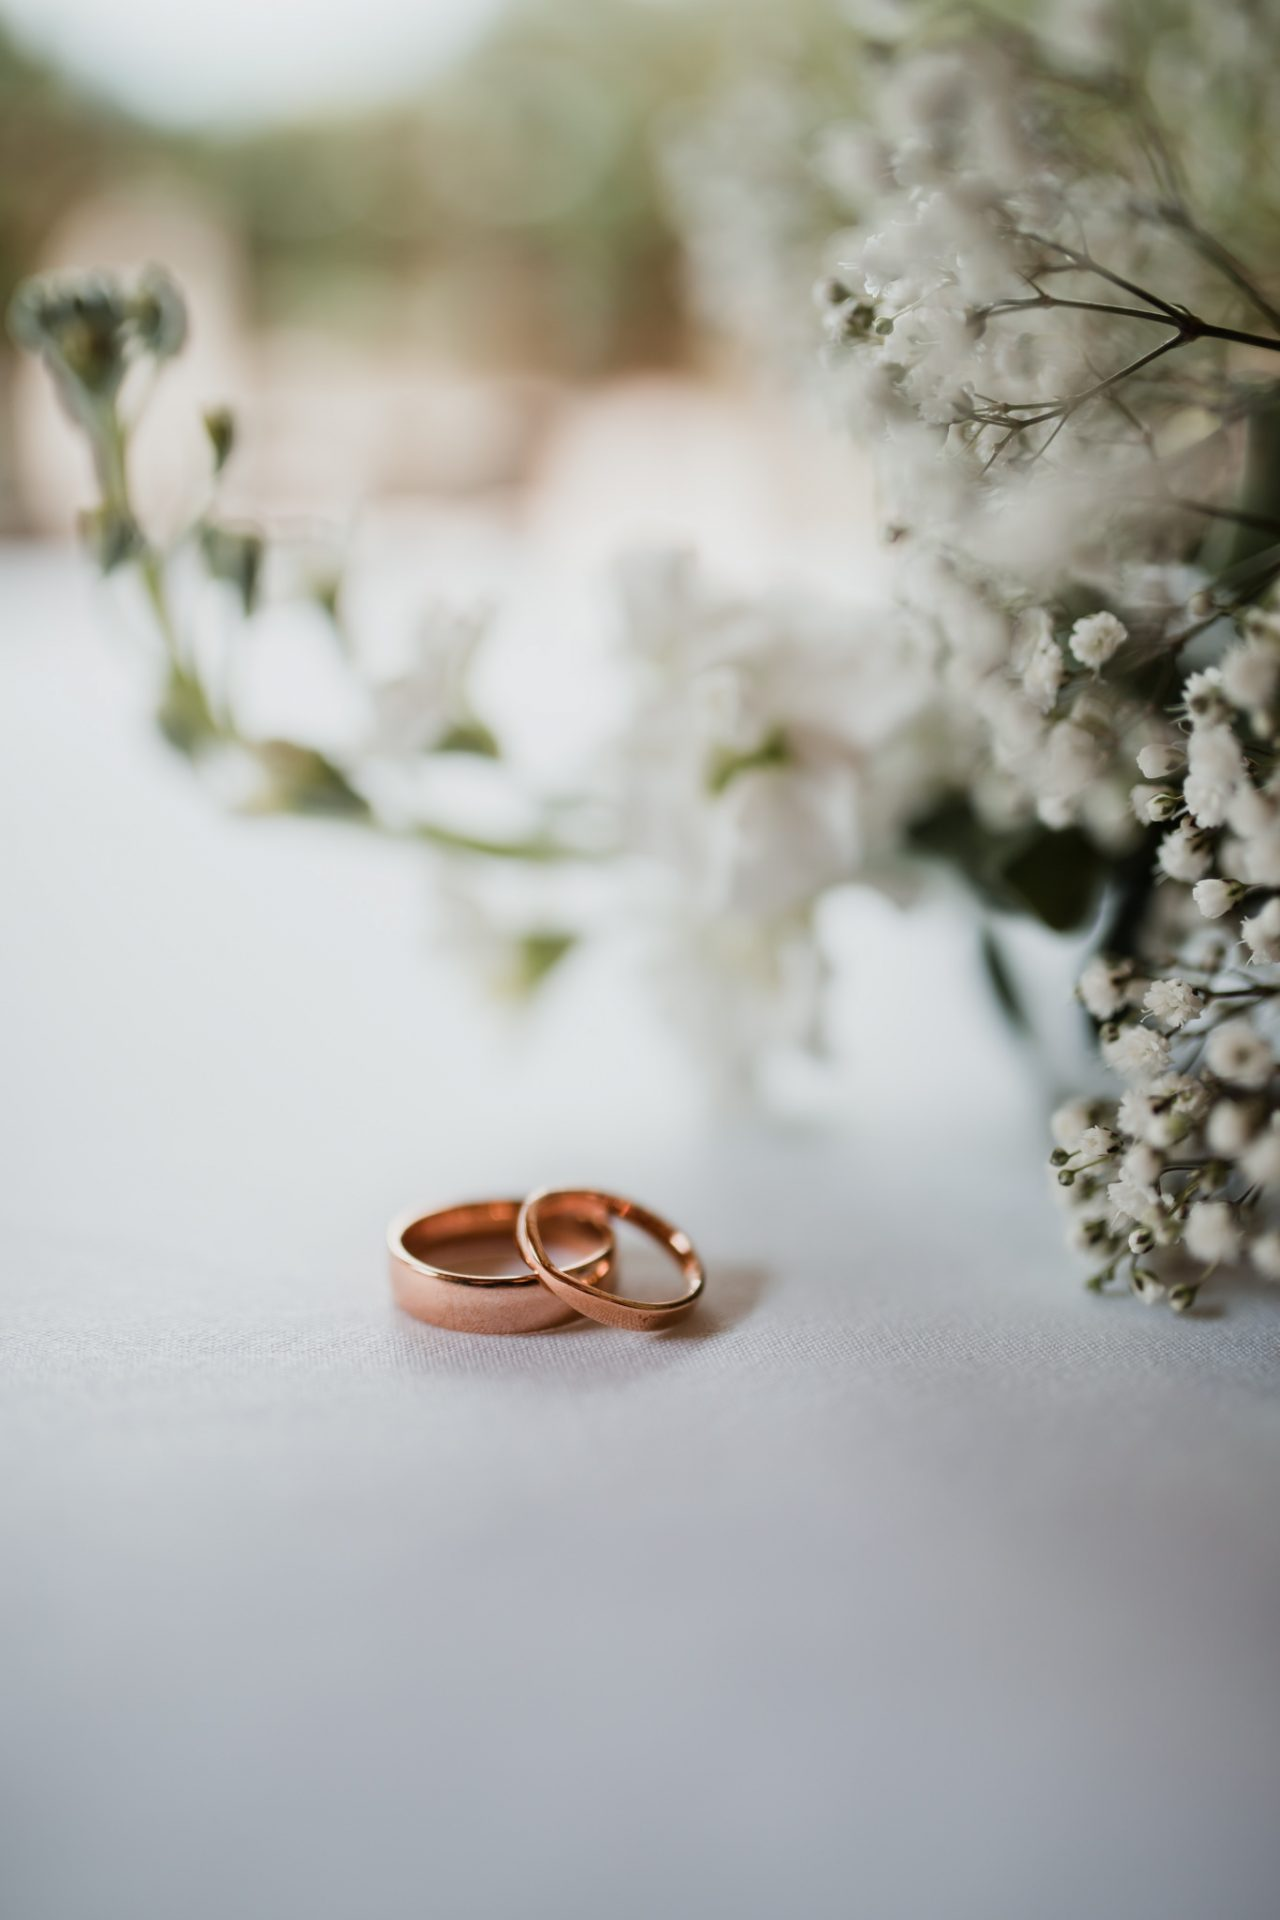 rose gold wedding rings detail shot